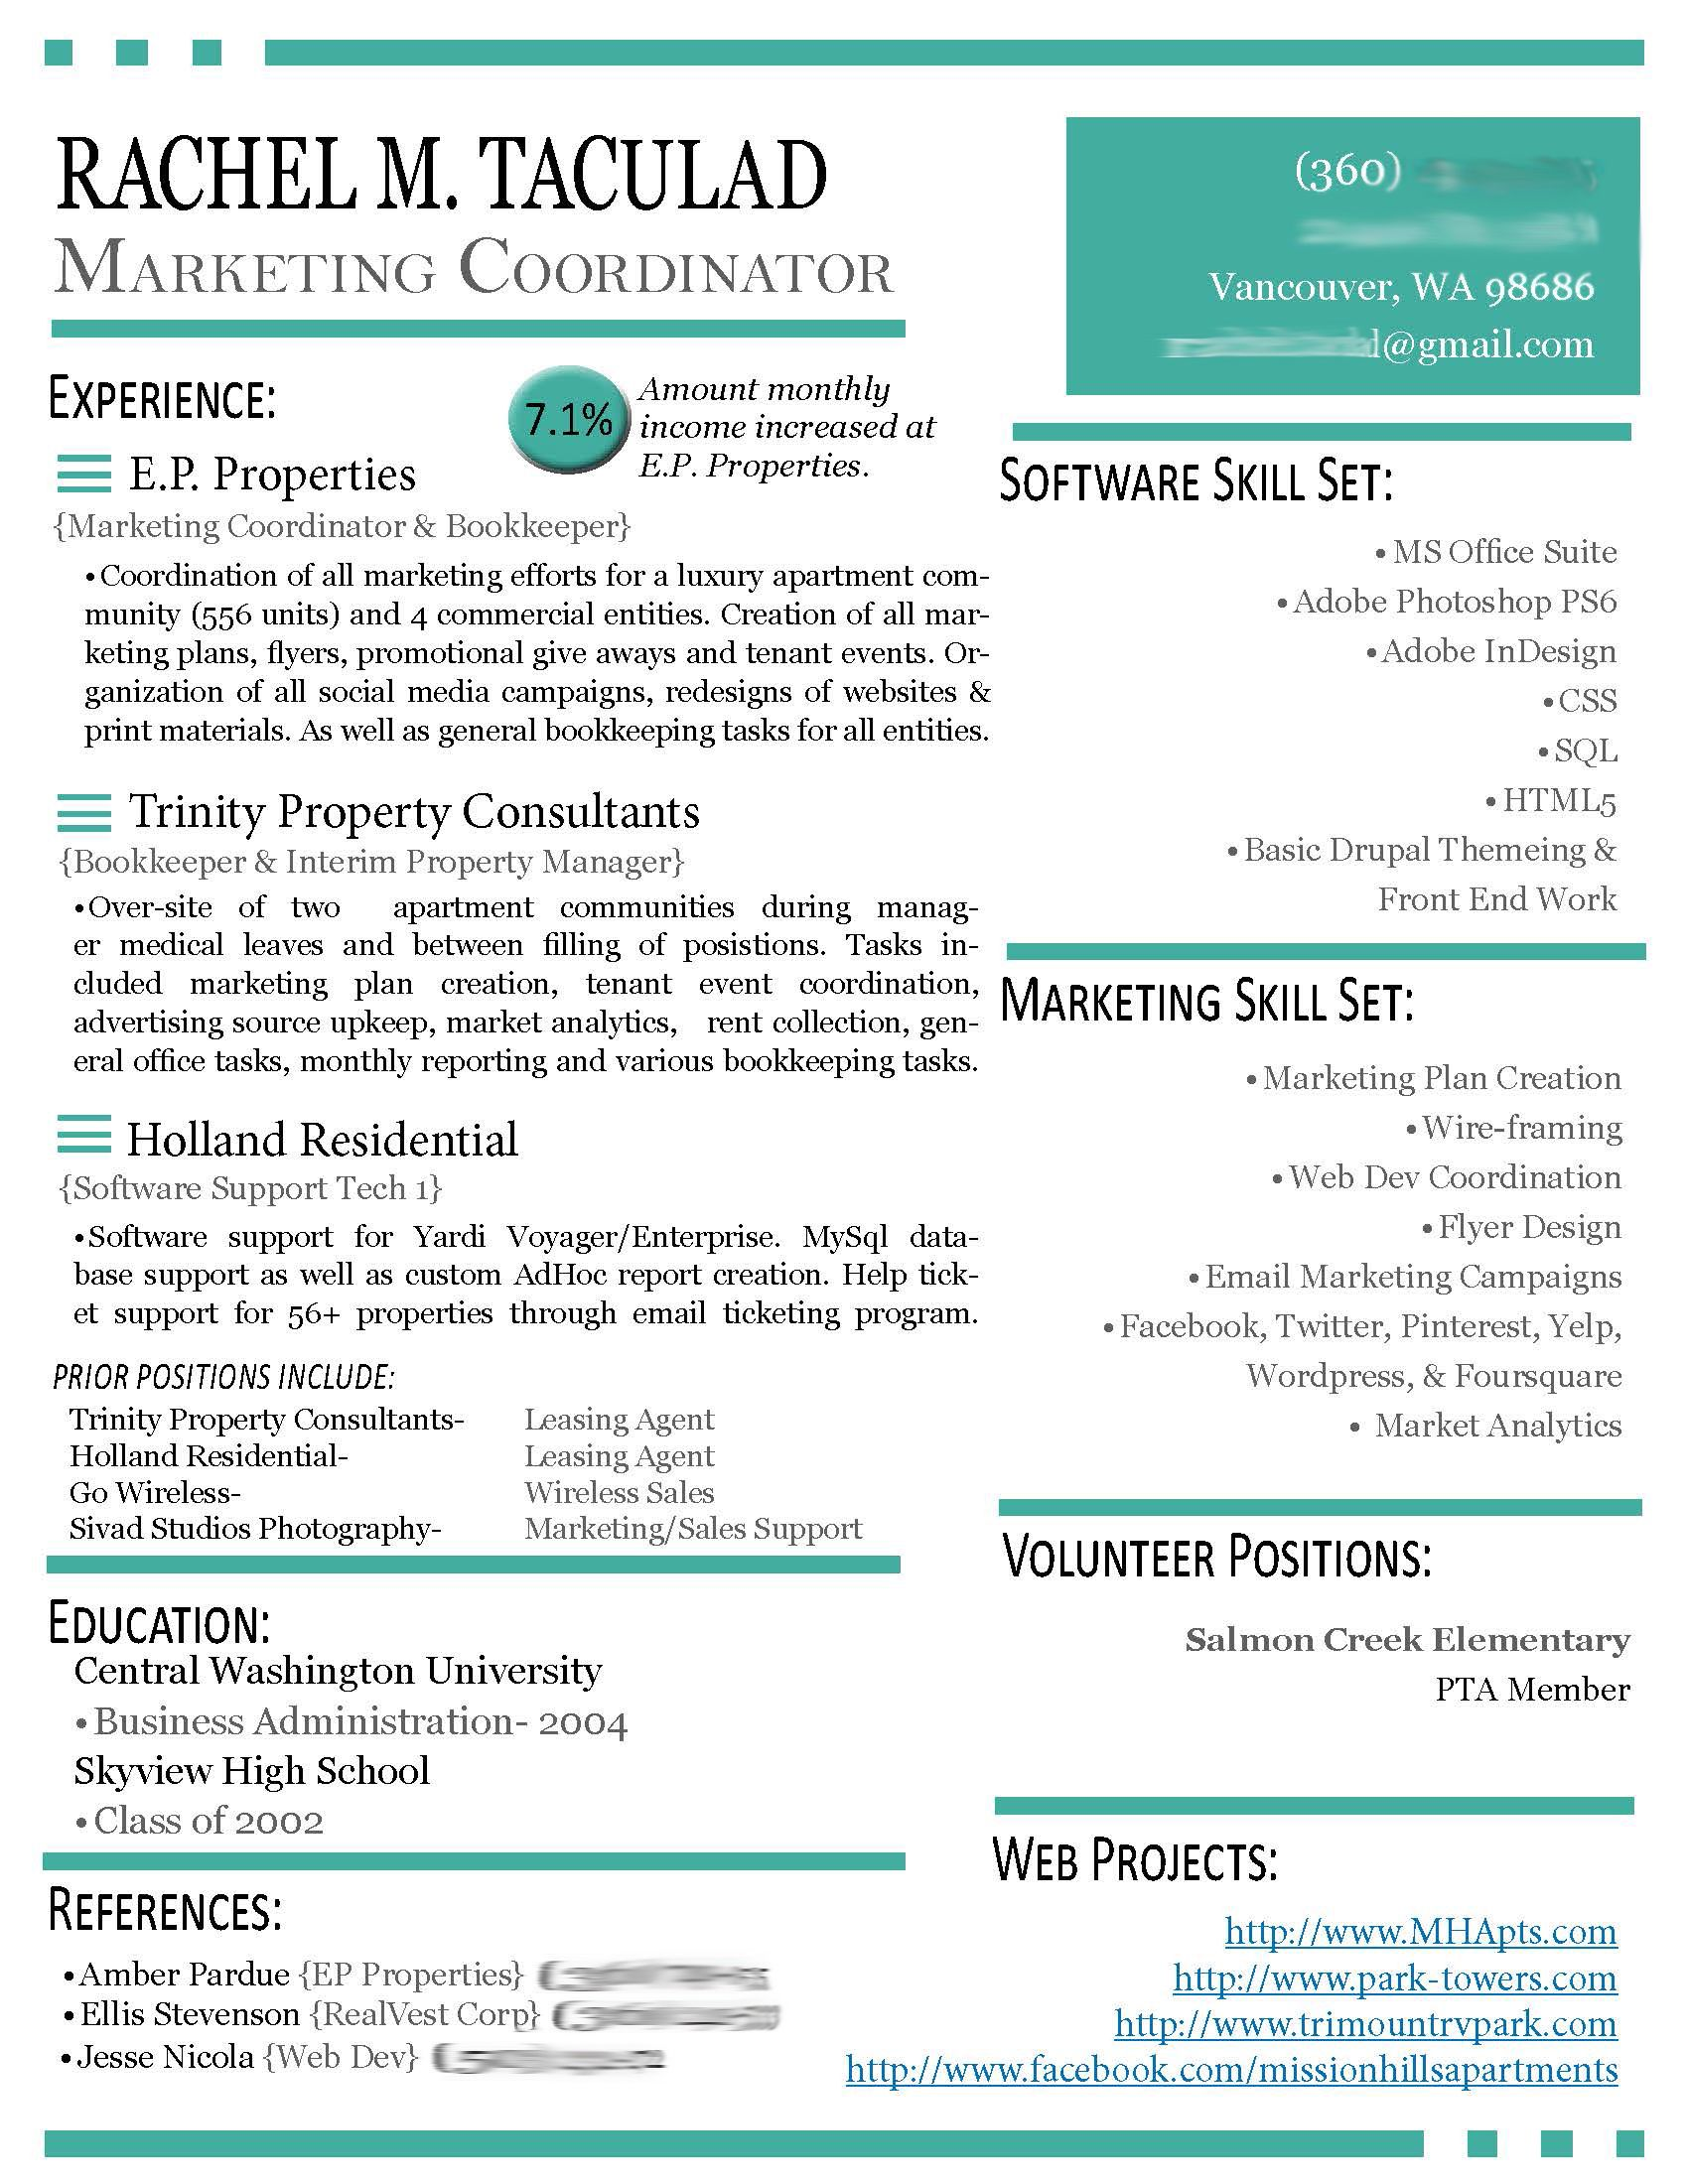 Opposenewapstandardsus  Pleasing  Images About Work Stuff On Pinterest  Resume Professional  With Magnificent  Images About Work Stuff On Pinterest  Resume Professional Resume Template And Resume Templates With Nice Resume For Teaching Job Also It Resume Template Word In Addition Resume Objective Necessary And Carpenter Resume Examples As Well As Design A Resume Additionally Social Worker Resume Examples From Pinterestcom With Opposenewapstandardsus  Magnificent  Images About Work Stuff On Pinterest  Resume Professional  With Nice  Images About Work Stuff On Pinterest  Resume Professional Resume Template And Resume Templates And Pleasing Resume For Teaching Job Also It Resume Template Word In Addition Resume Objective Necessary From Pinterestcom